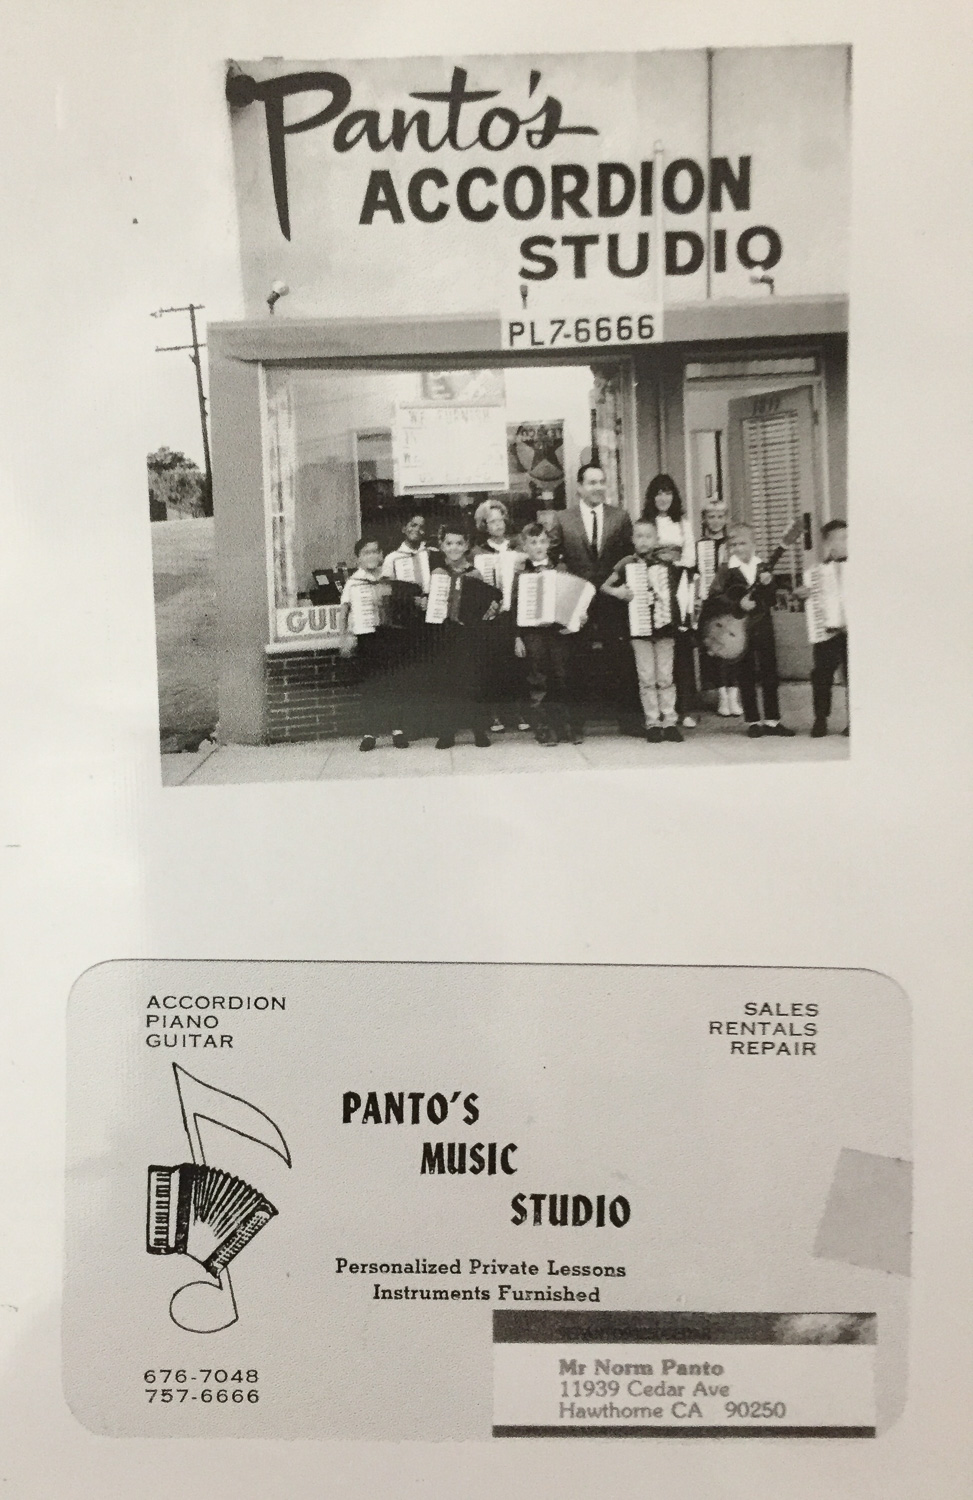 Mementos of Norman Panto's own music school, one of many chapters from his 70+year career playing music.